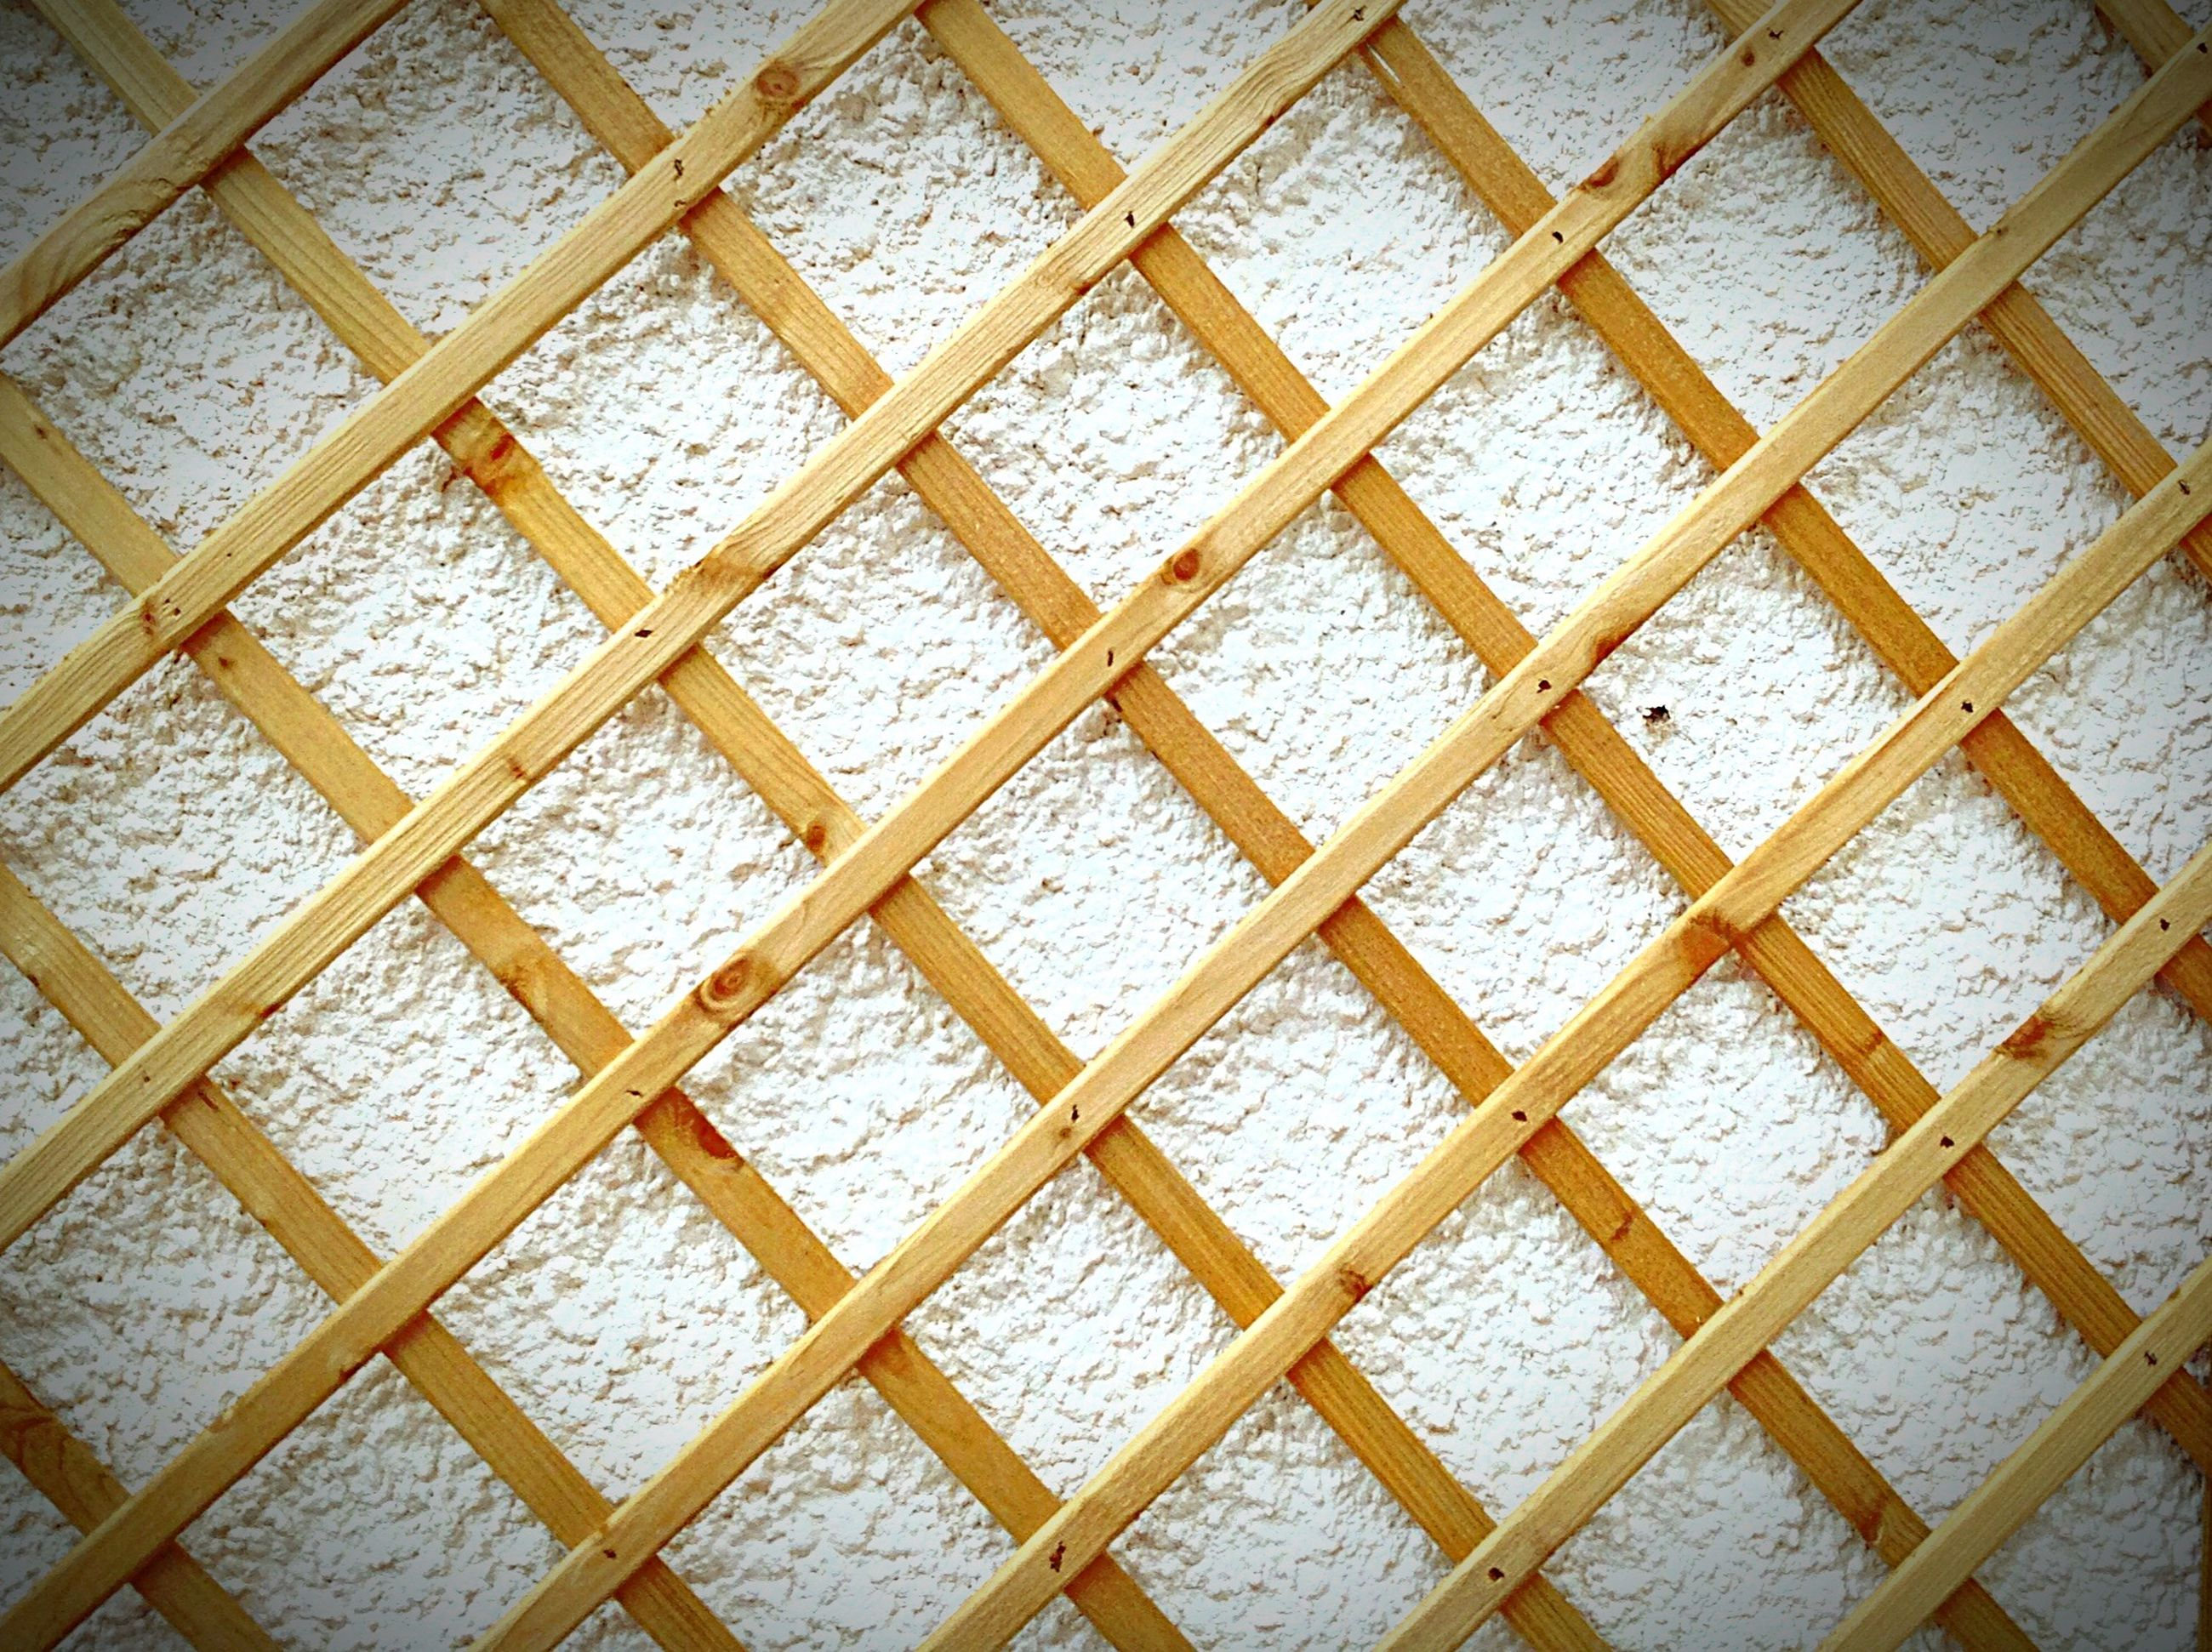 pattern, shape, no people, day, close-up, outdoors